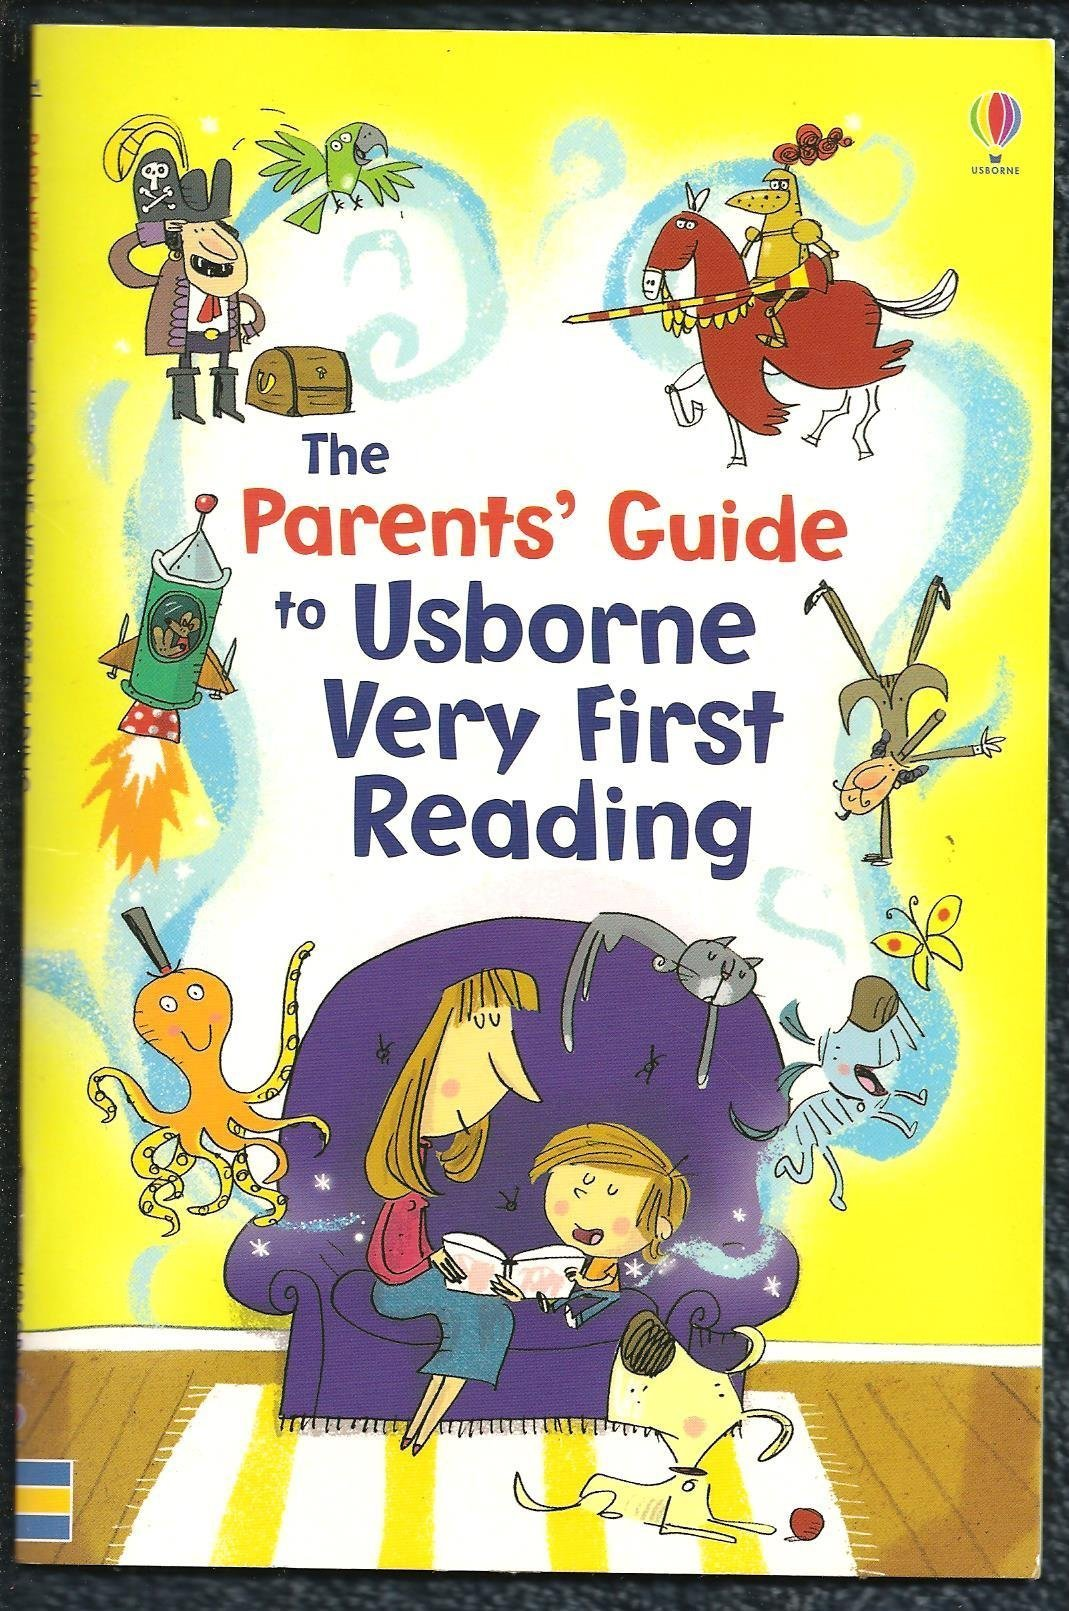 The Parents' Guide to Usborne Very First Reading